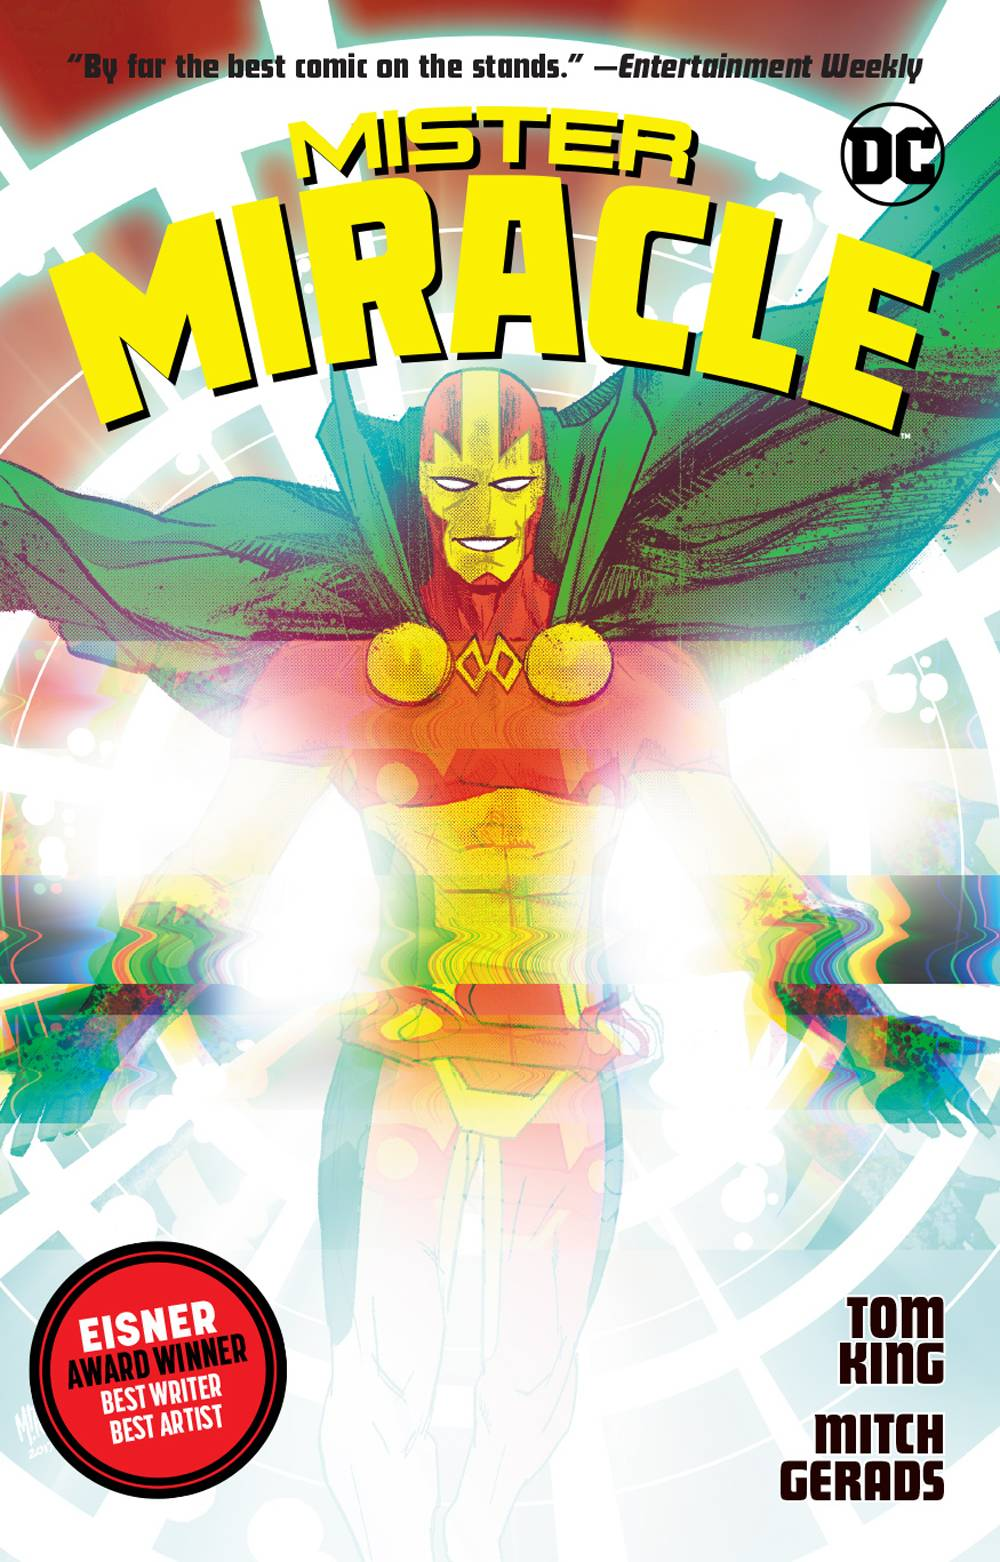 "Since I didn't have a post last week I wanted to take a moment to make sure you don't miss the release of the new Mister Miracle trade paperback from DC Comics last week. Tom King has been knocking out of the park for a few years now, and I love his take on DC's ""cosmic"" characters so far. This book was one of the best selling and most critically acclaimed of 2018, if you didn't pick it up before, do yourself a favor and get it now!"